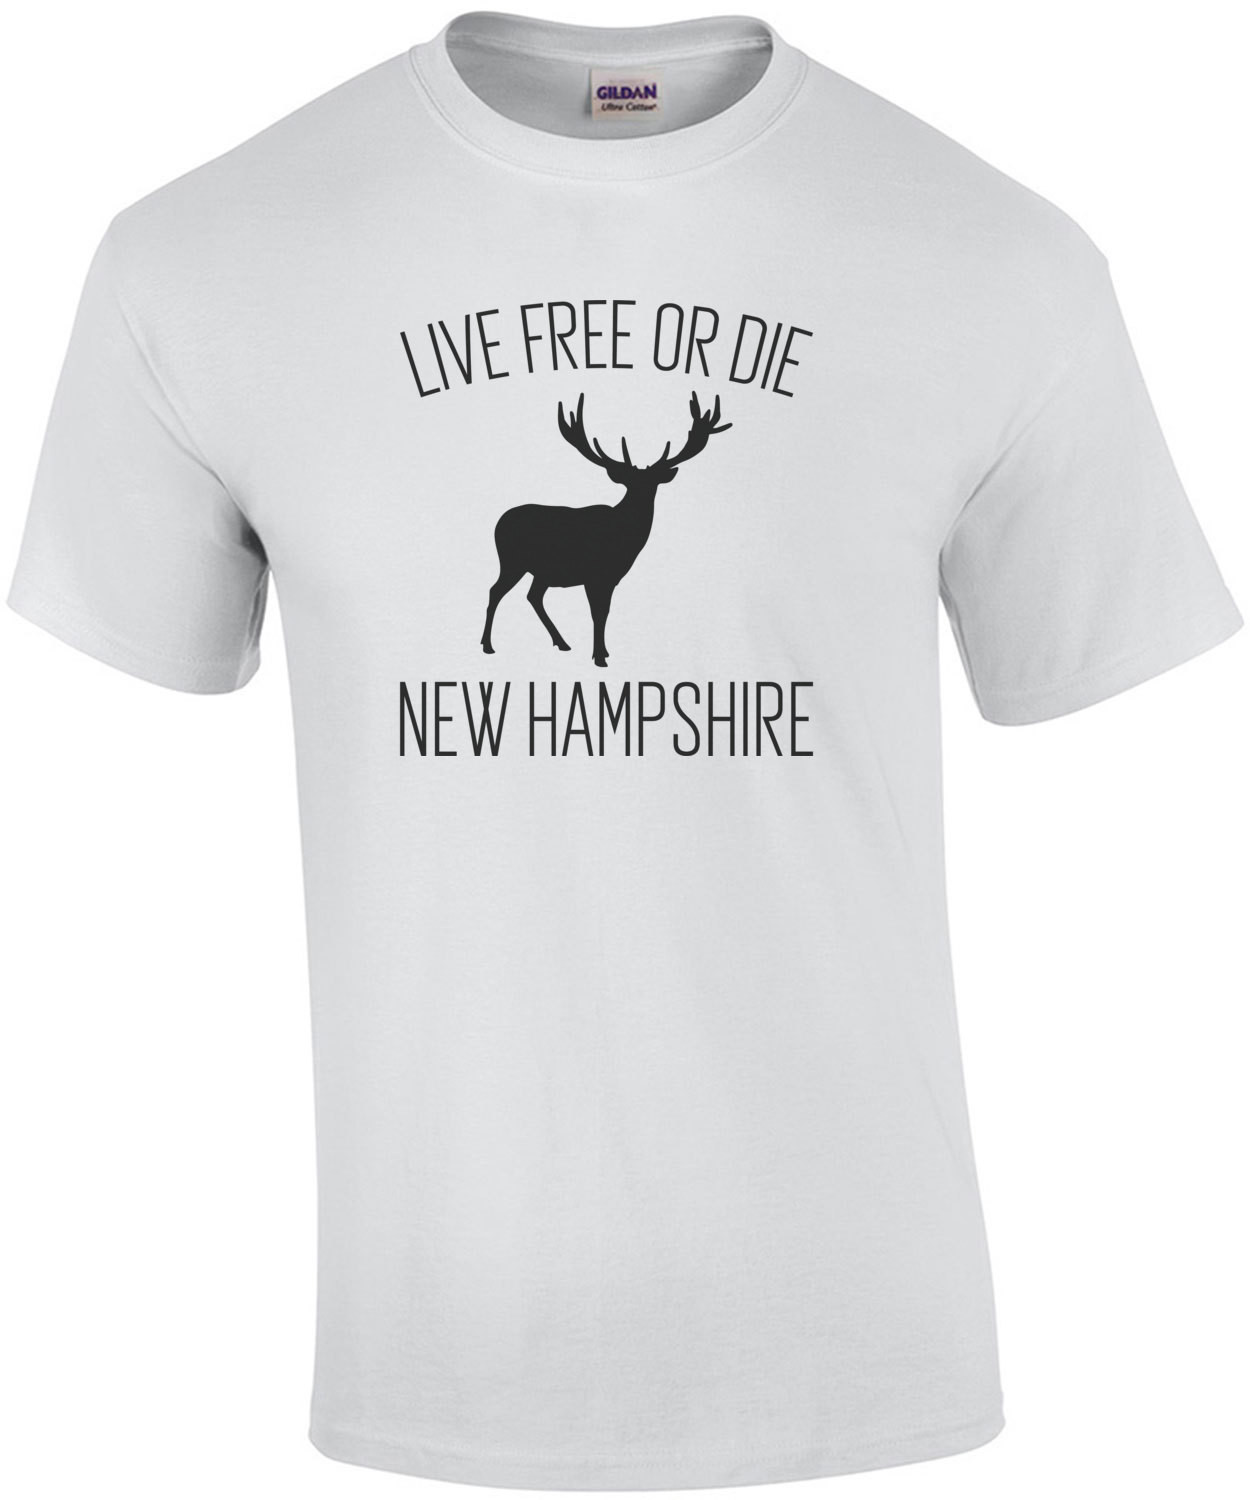 Live free or die - New Hampshire T-Shirt